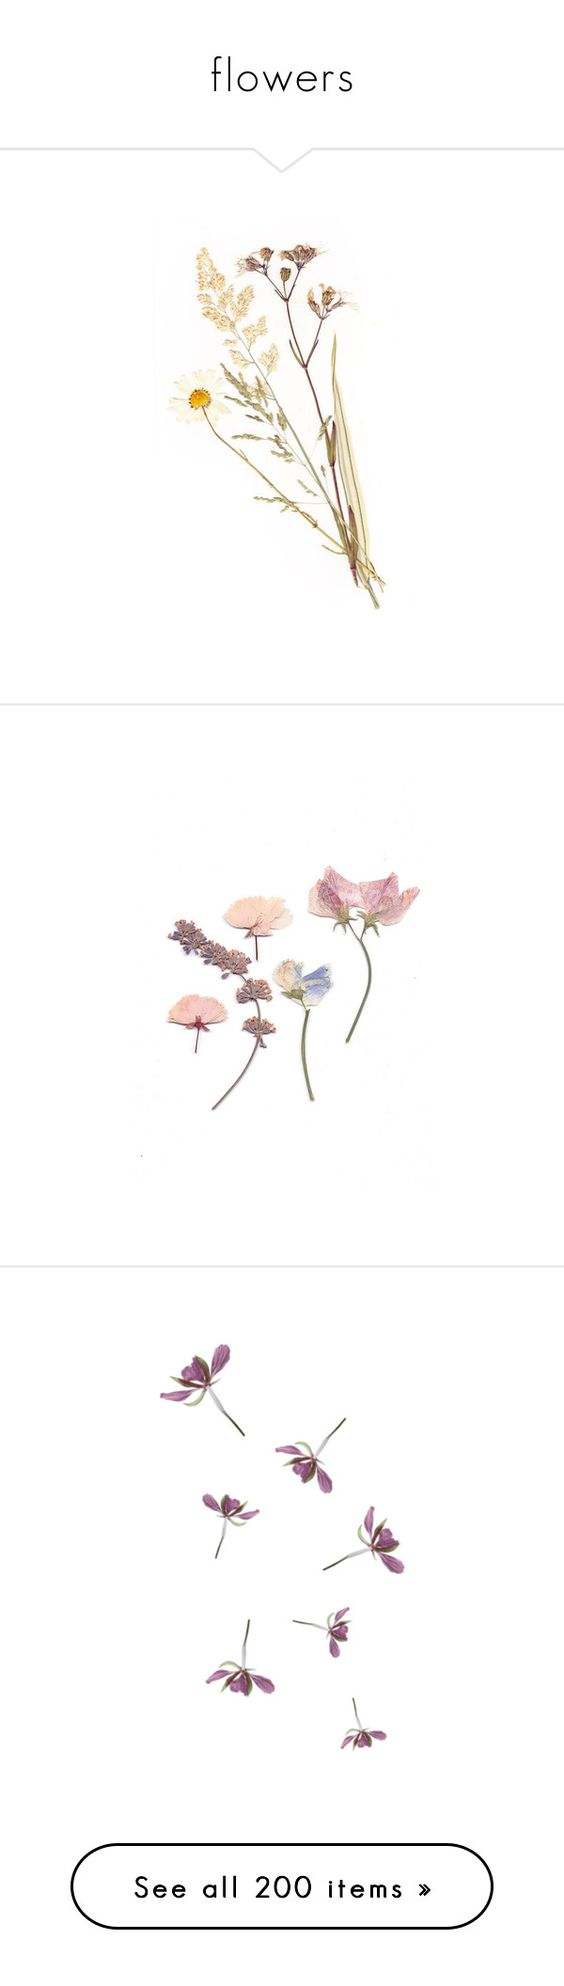 """""""flowers"""" by randomn3ss ❤ liked on Polyvore featuring fillers, flowers, plants, nature, decoration, backgrounds, text, quotes, saying and phrase"""